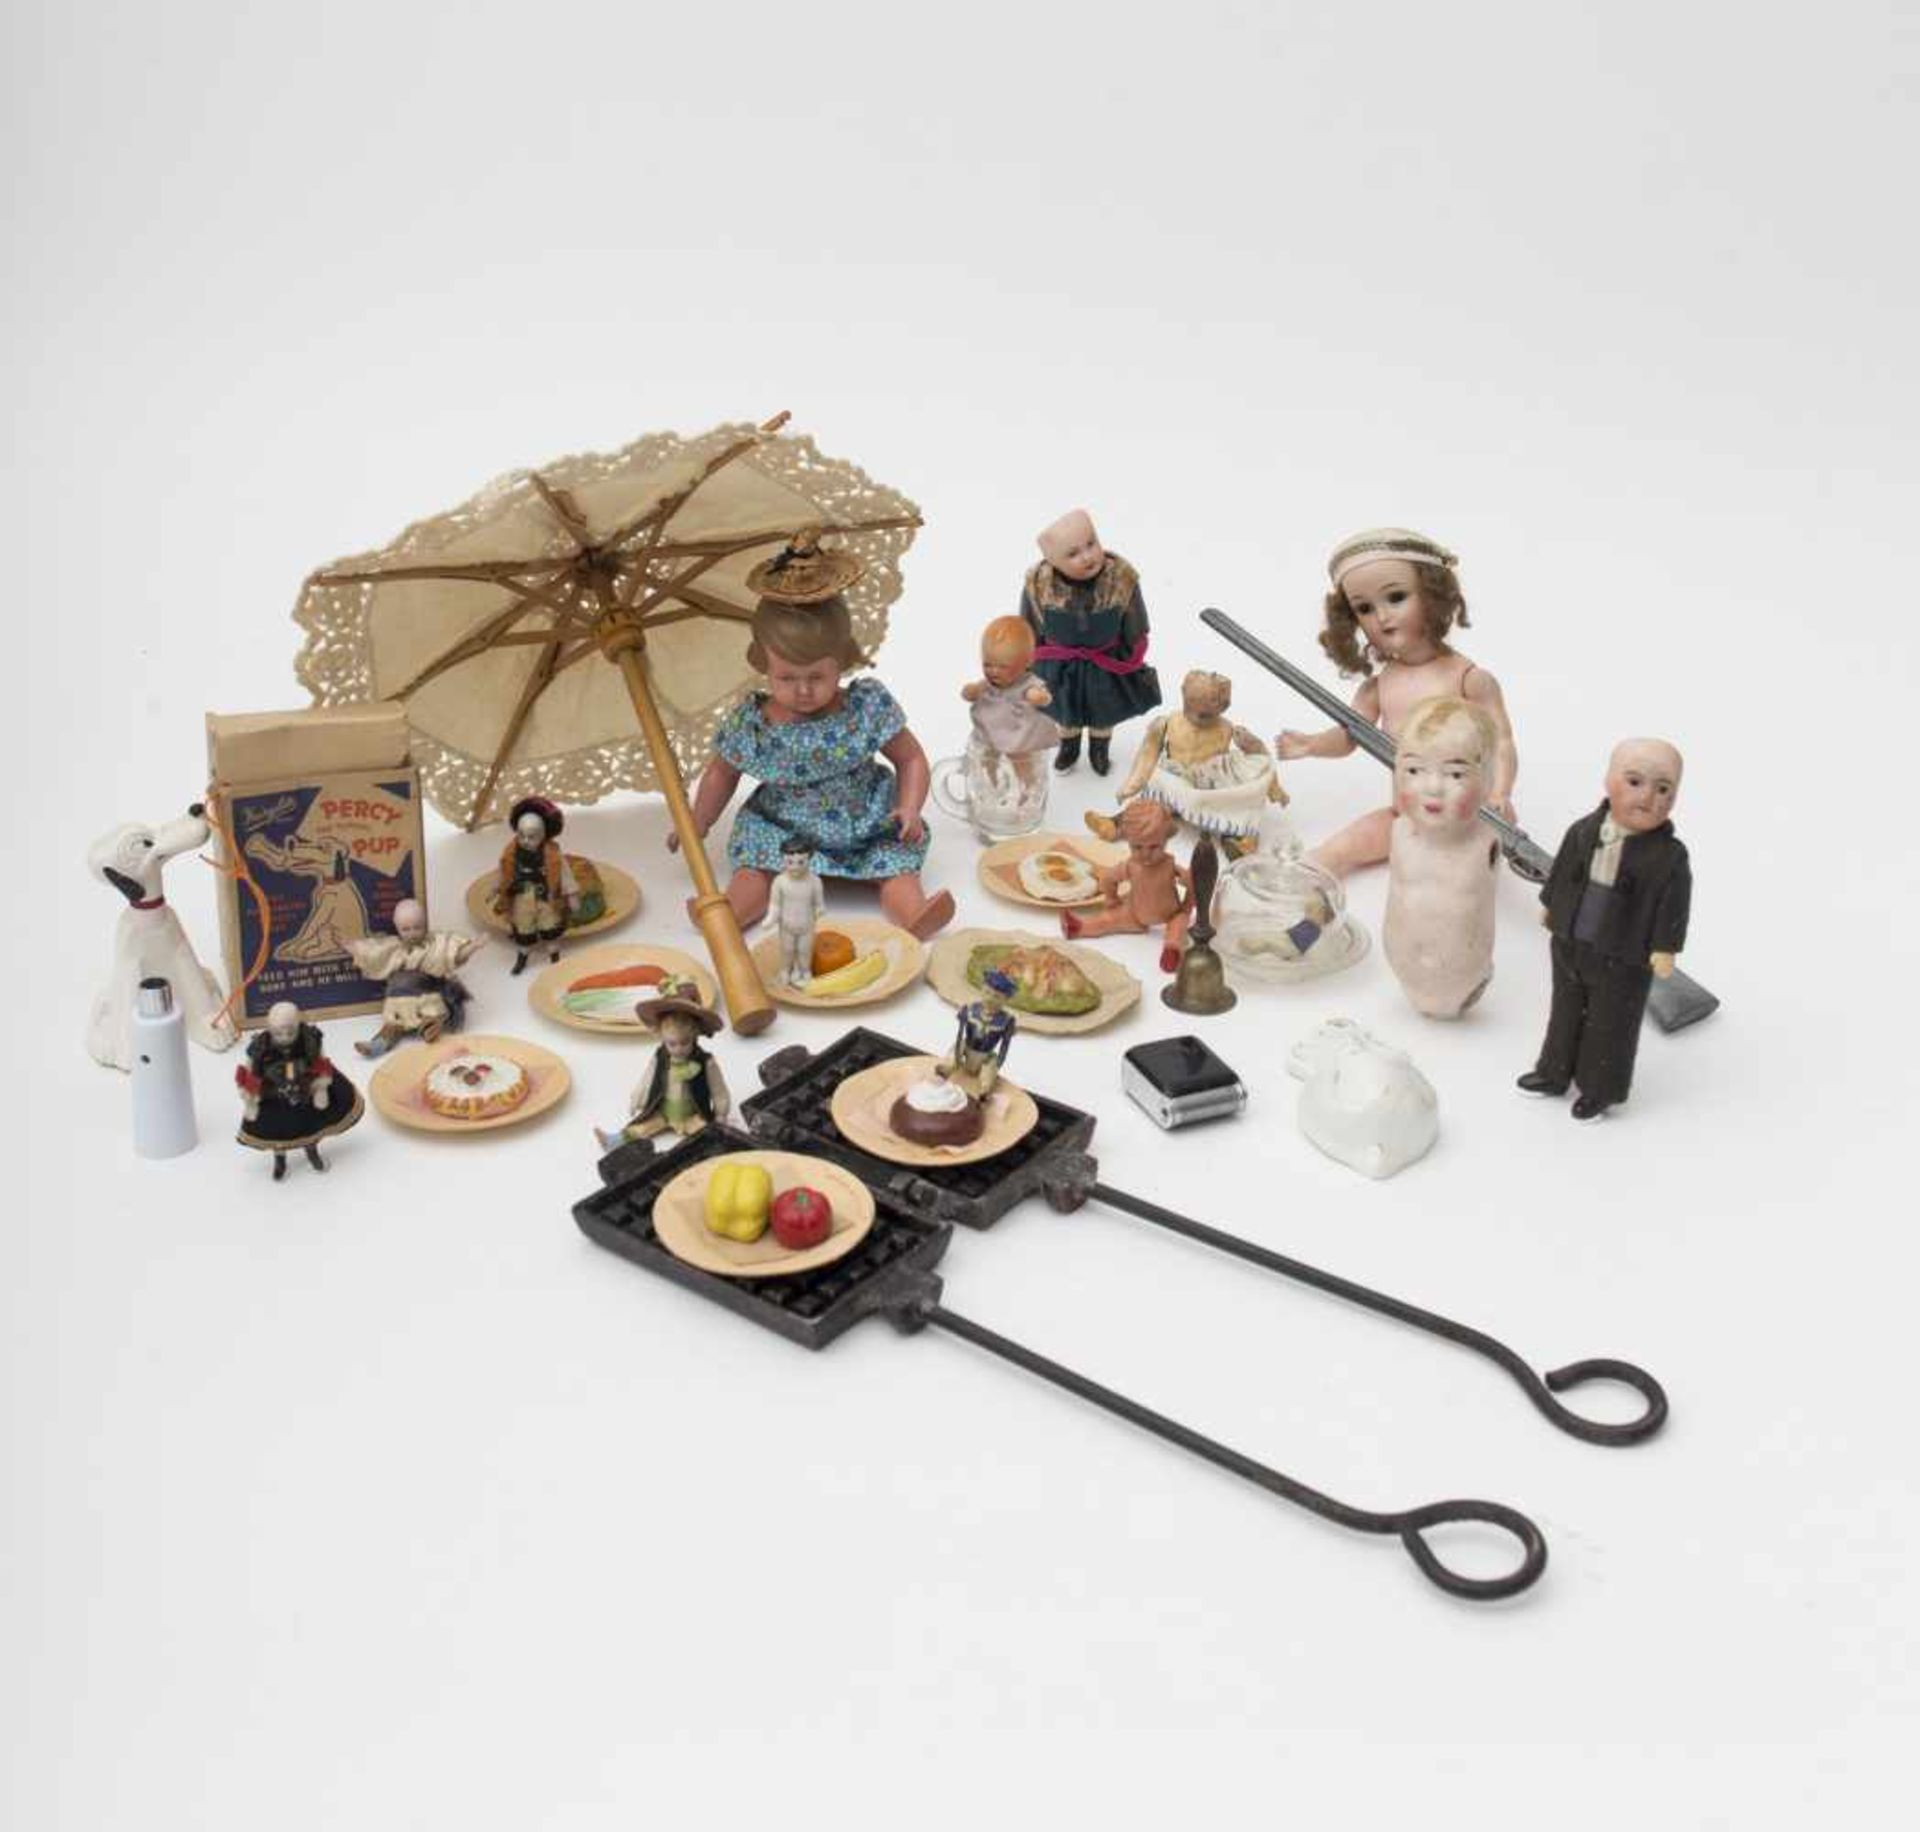 Set of accessories Comprised of doll parts – celluloid PERCY dog – mignonette – imitation food items